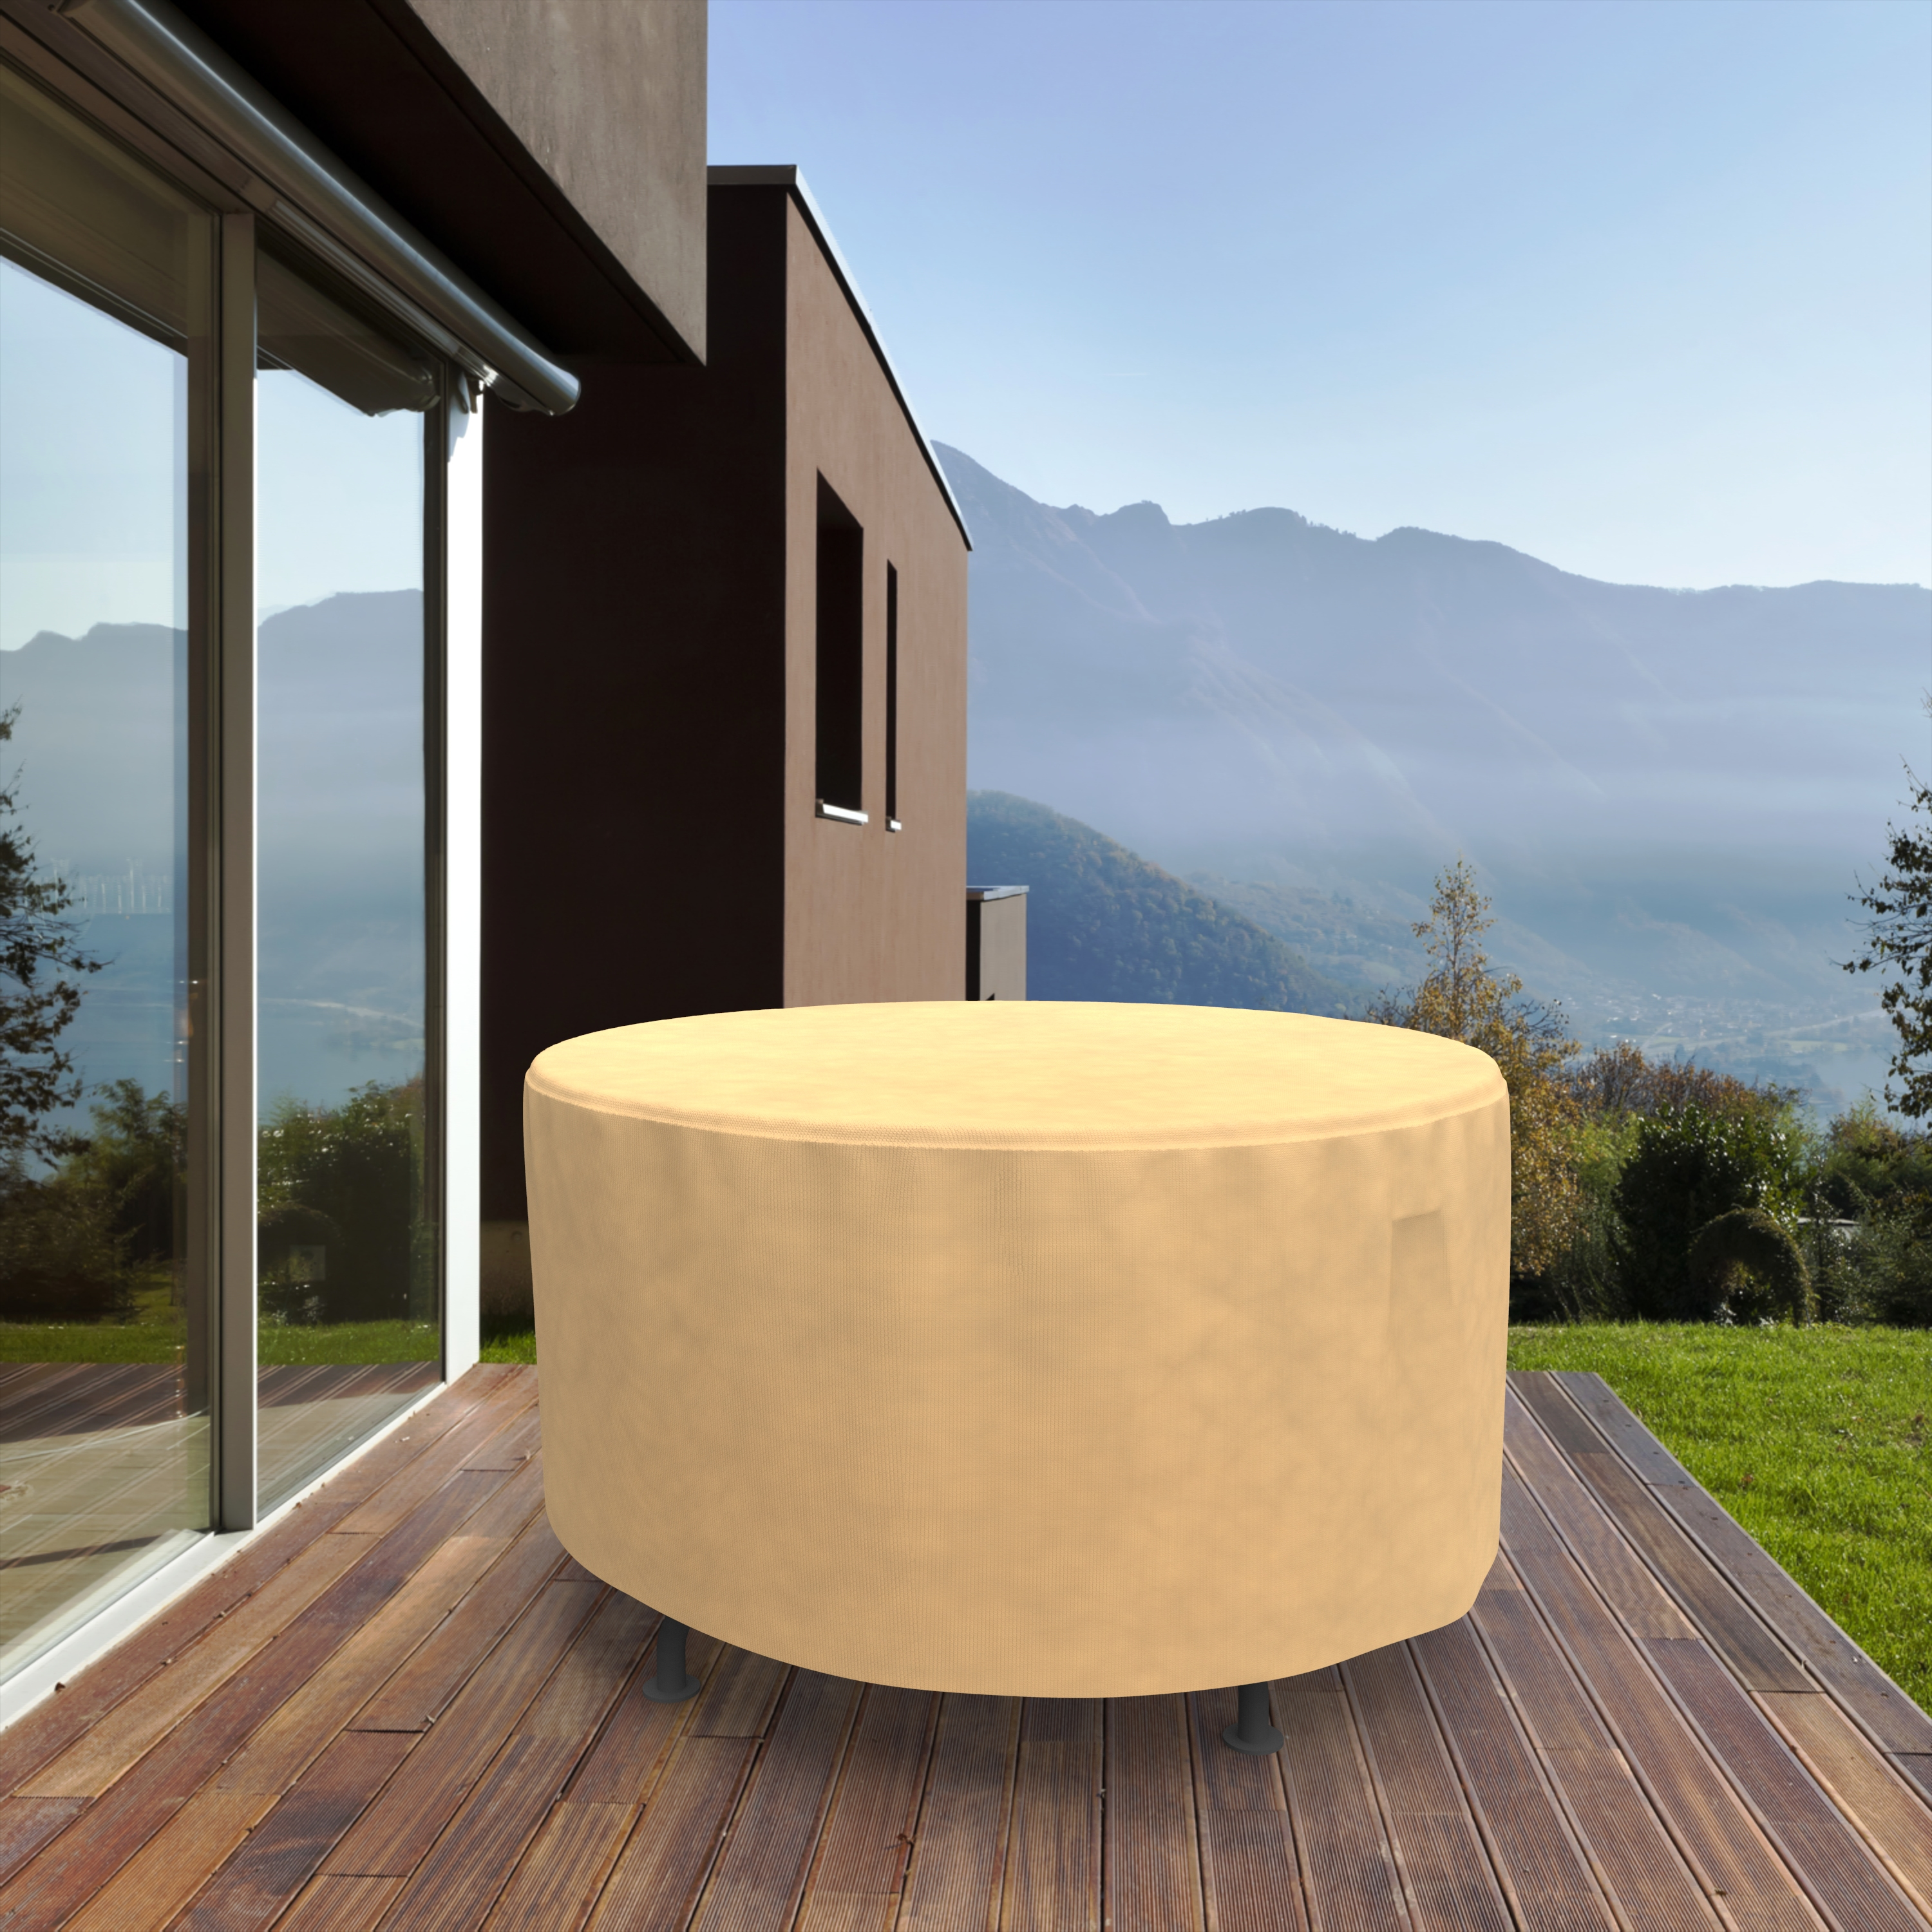 Budge Small Nutmeg Patio Outdoor Round Table Cover, All-Seasons